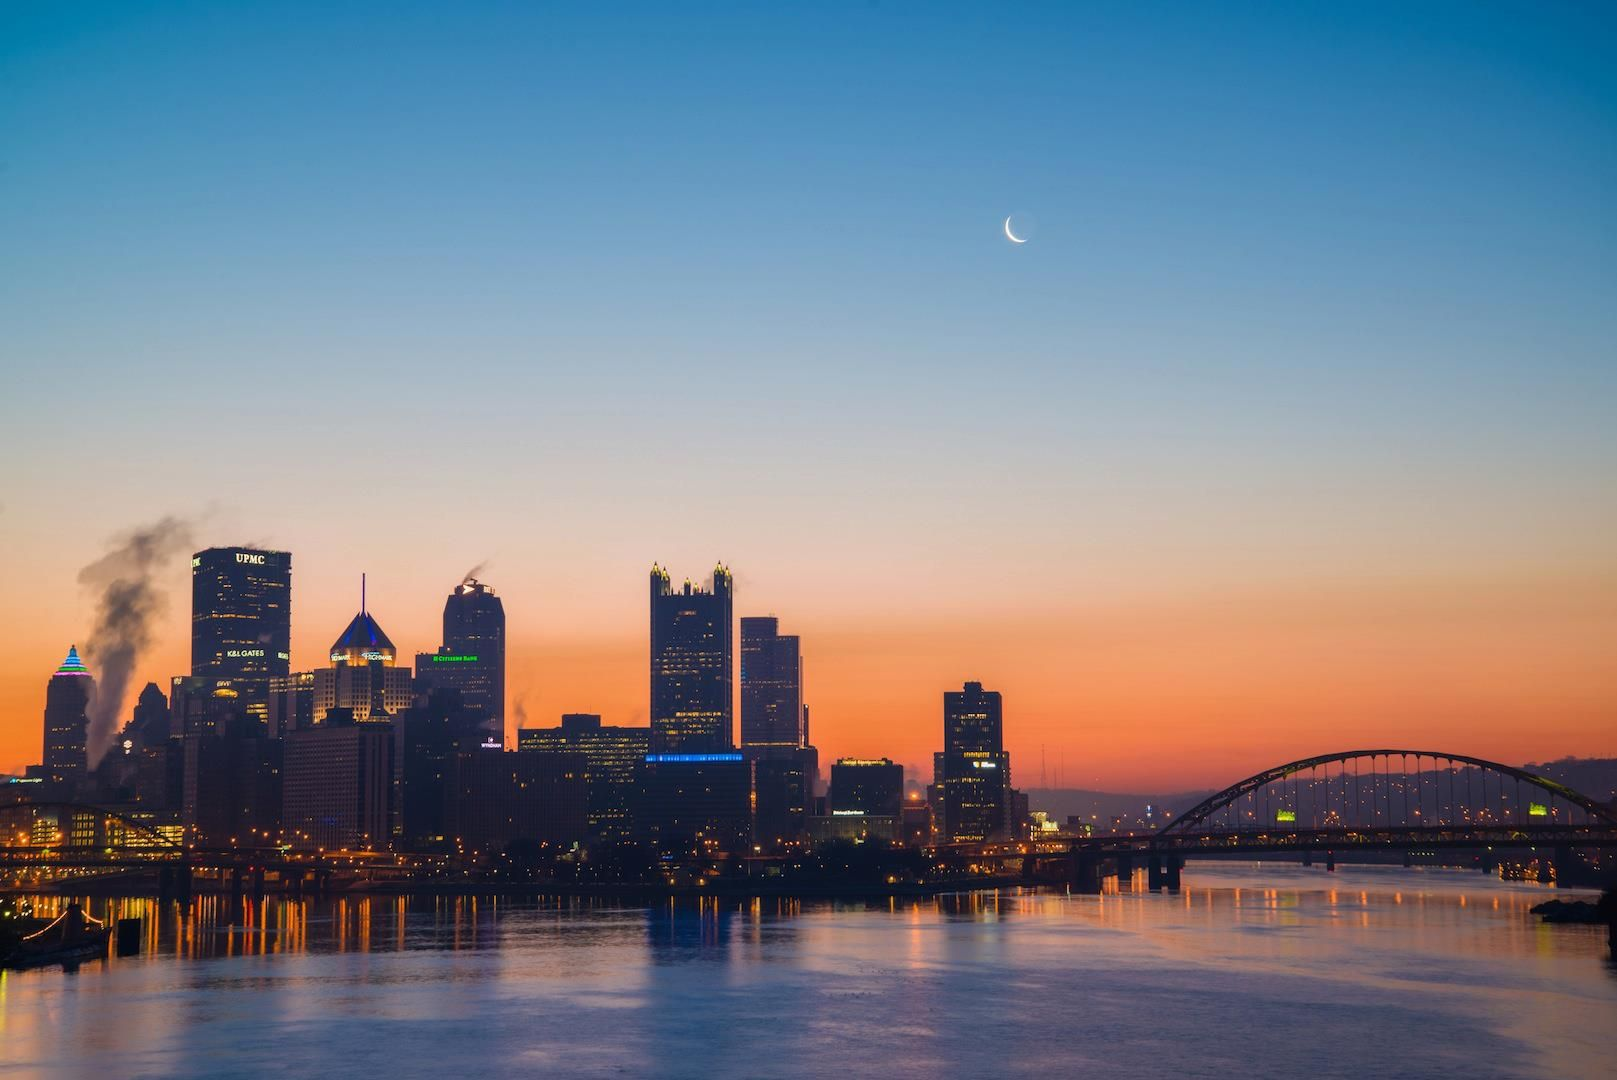 Pittsburgh skyline - photography by Dave DiCello